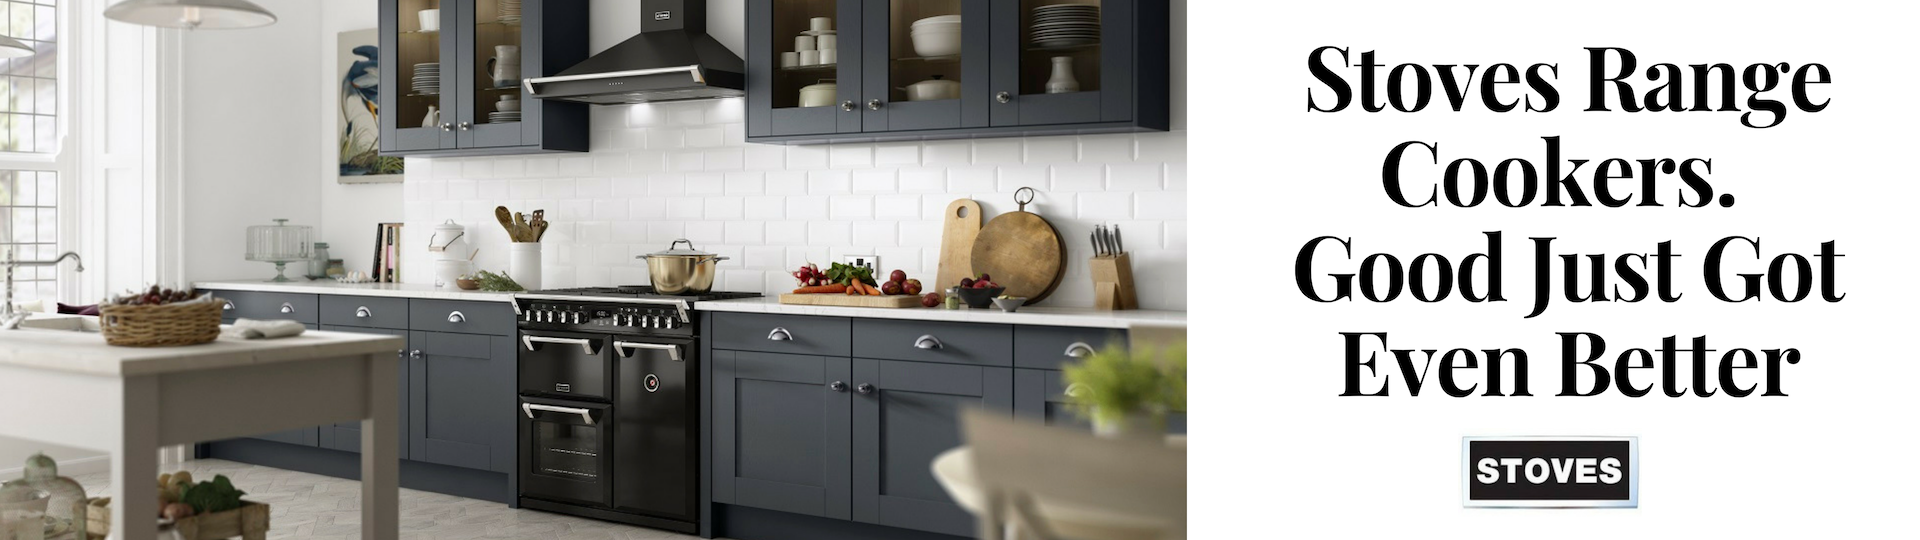 Stoves Range Cookers Blog - Good just got even better